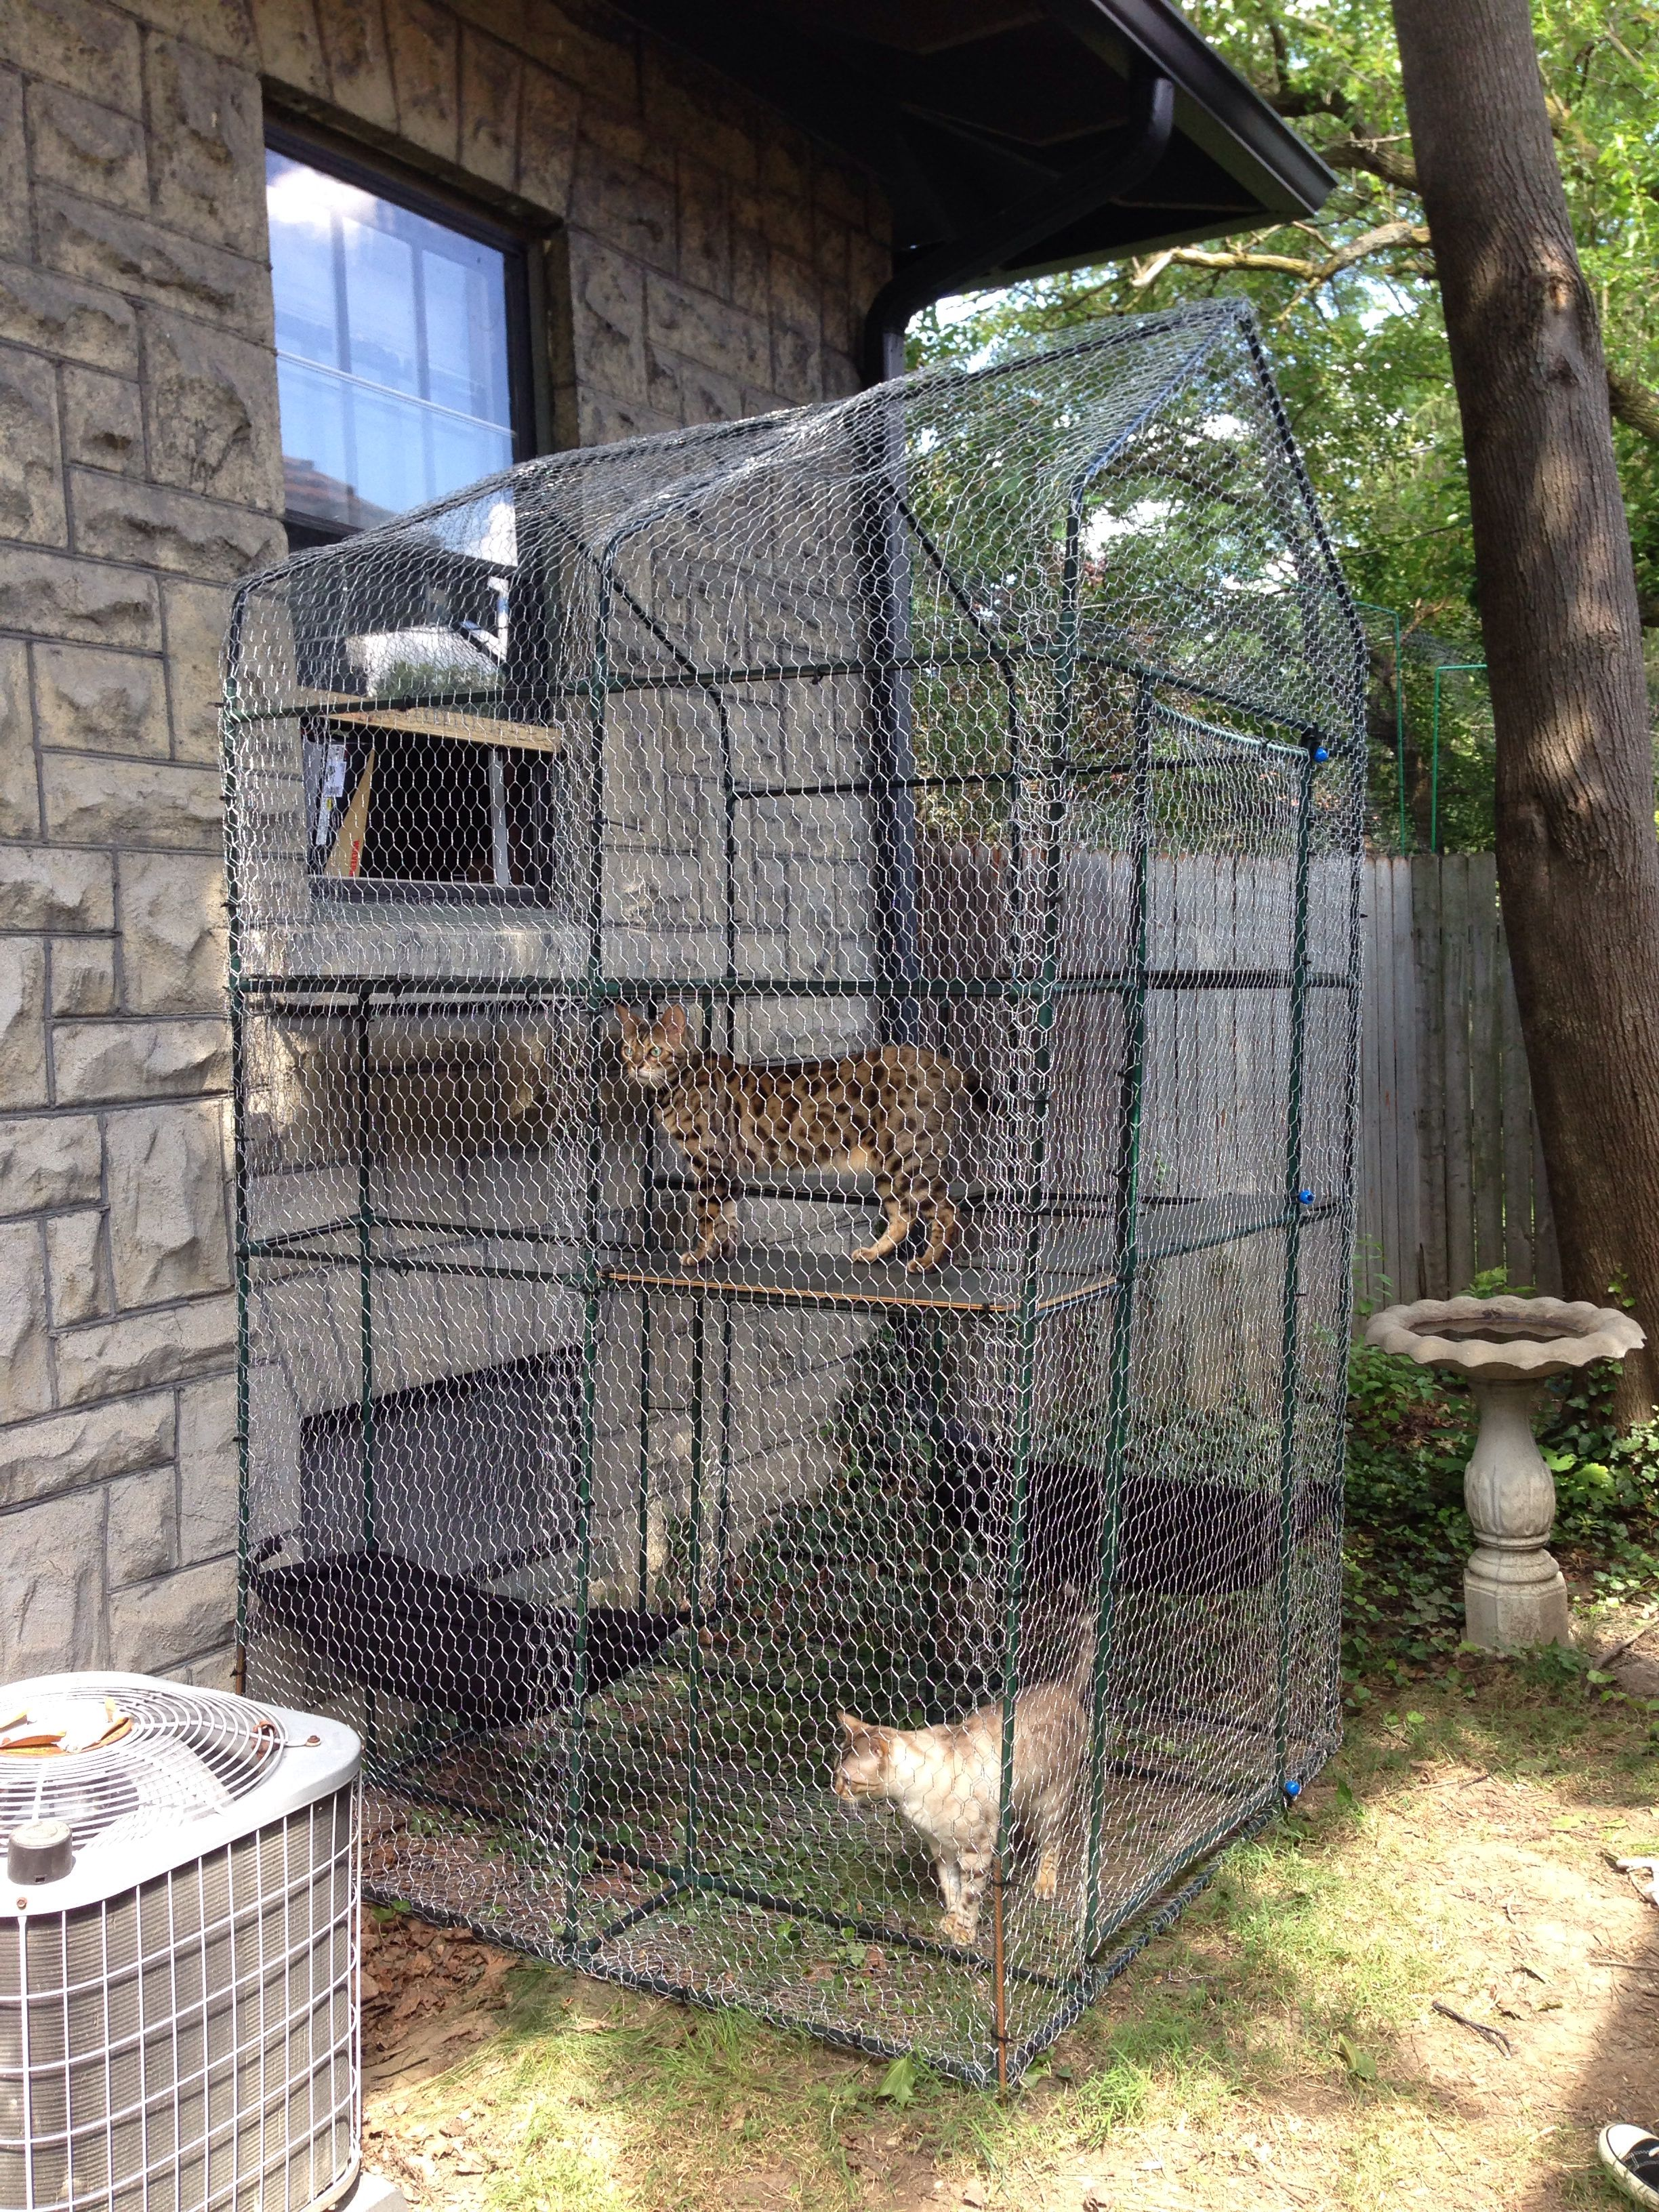 Catio For The Cats To Go Outside Via The Window I Modified A Small Greenhouse Frame I Found On Clearanc Siberian Cats For Sale Outdoor Pet Enclosure Cat Patio